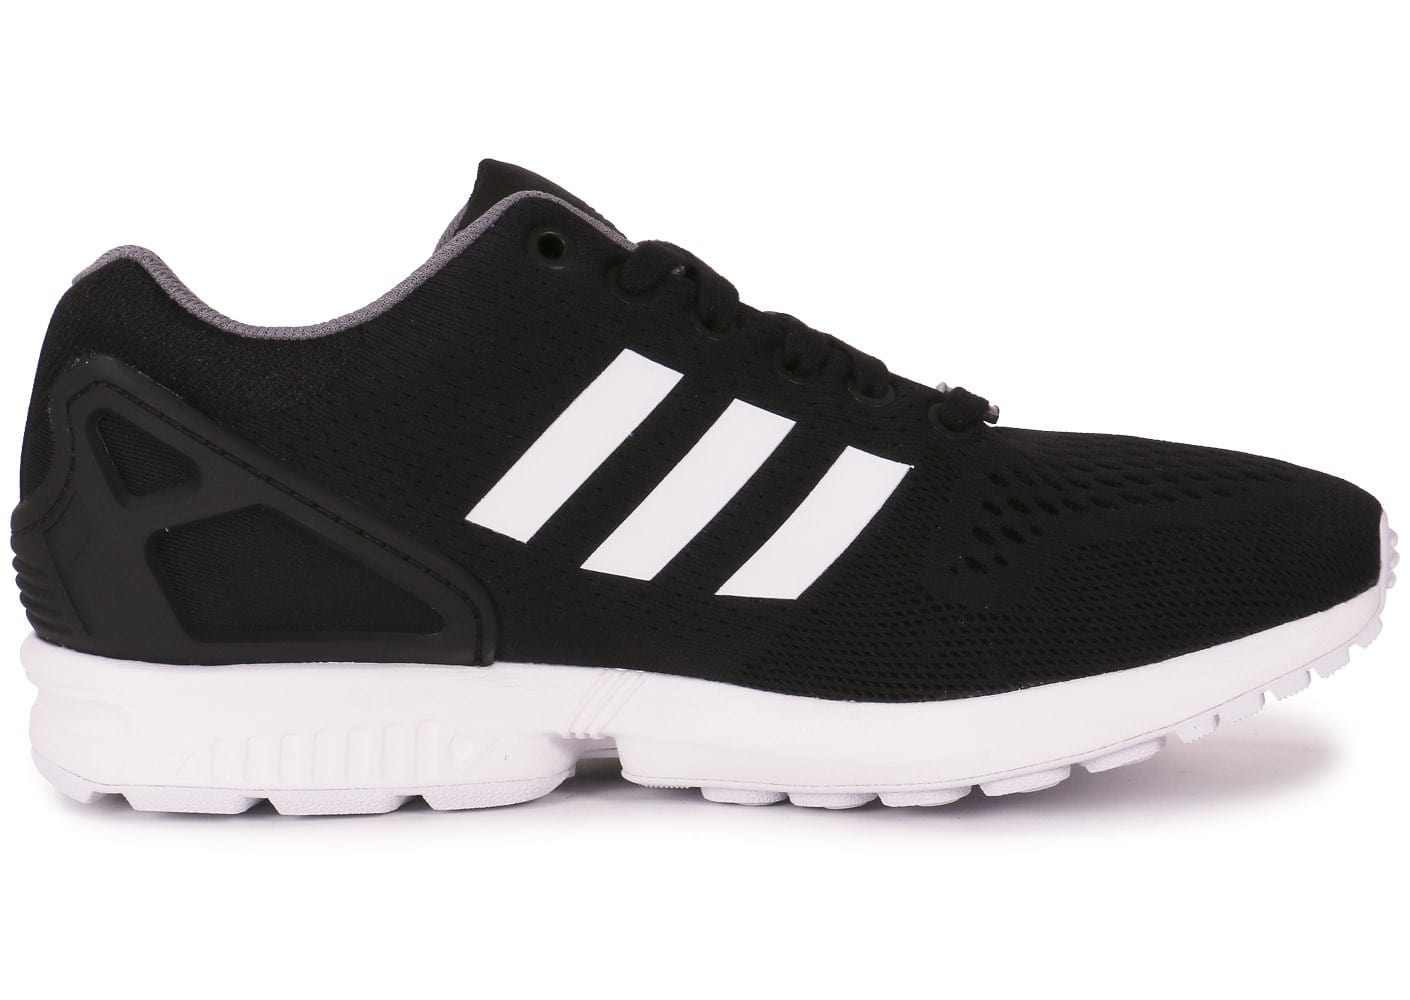 photos officielles 362f3 65b91 sweden adidas zx flux noir et blanc junior 9f9d5 542b9